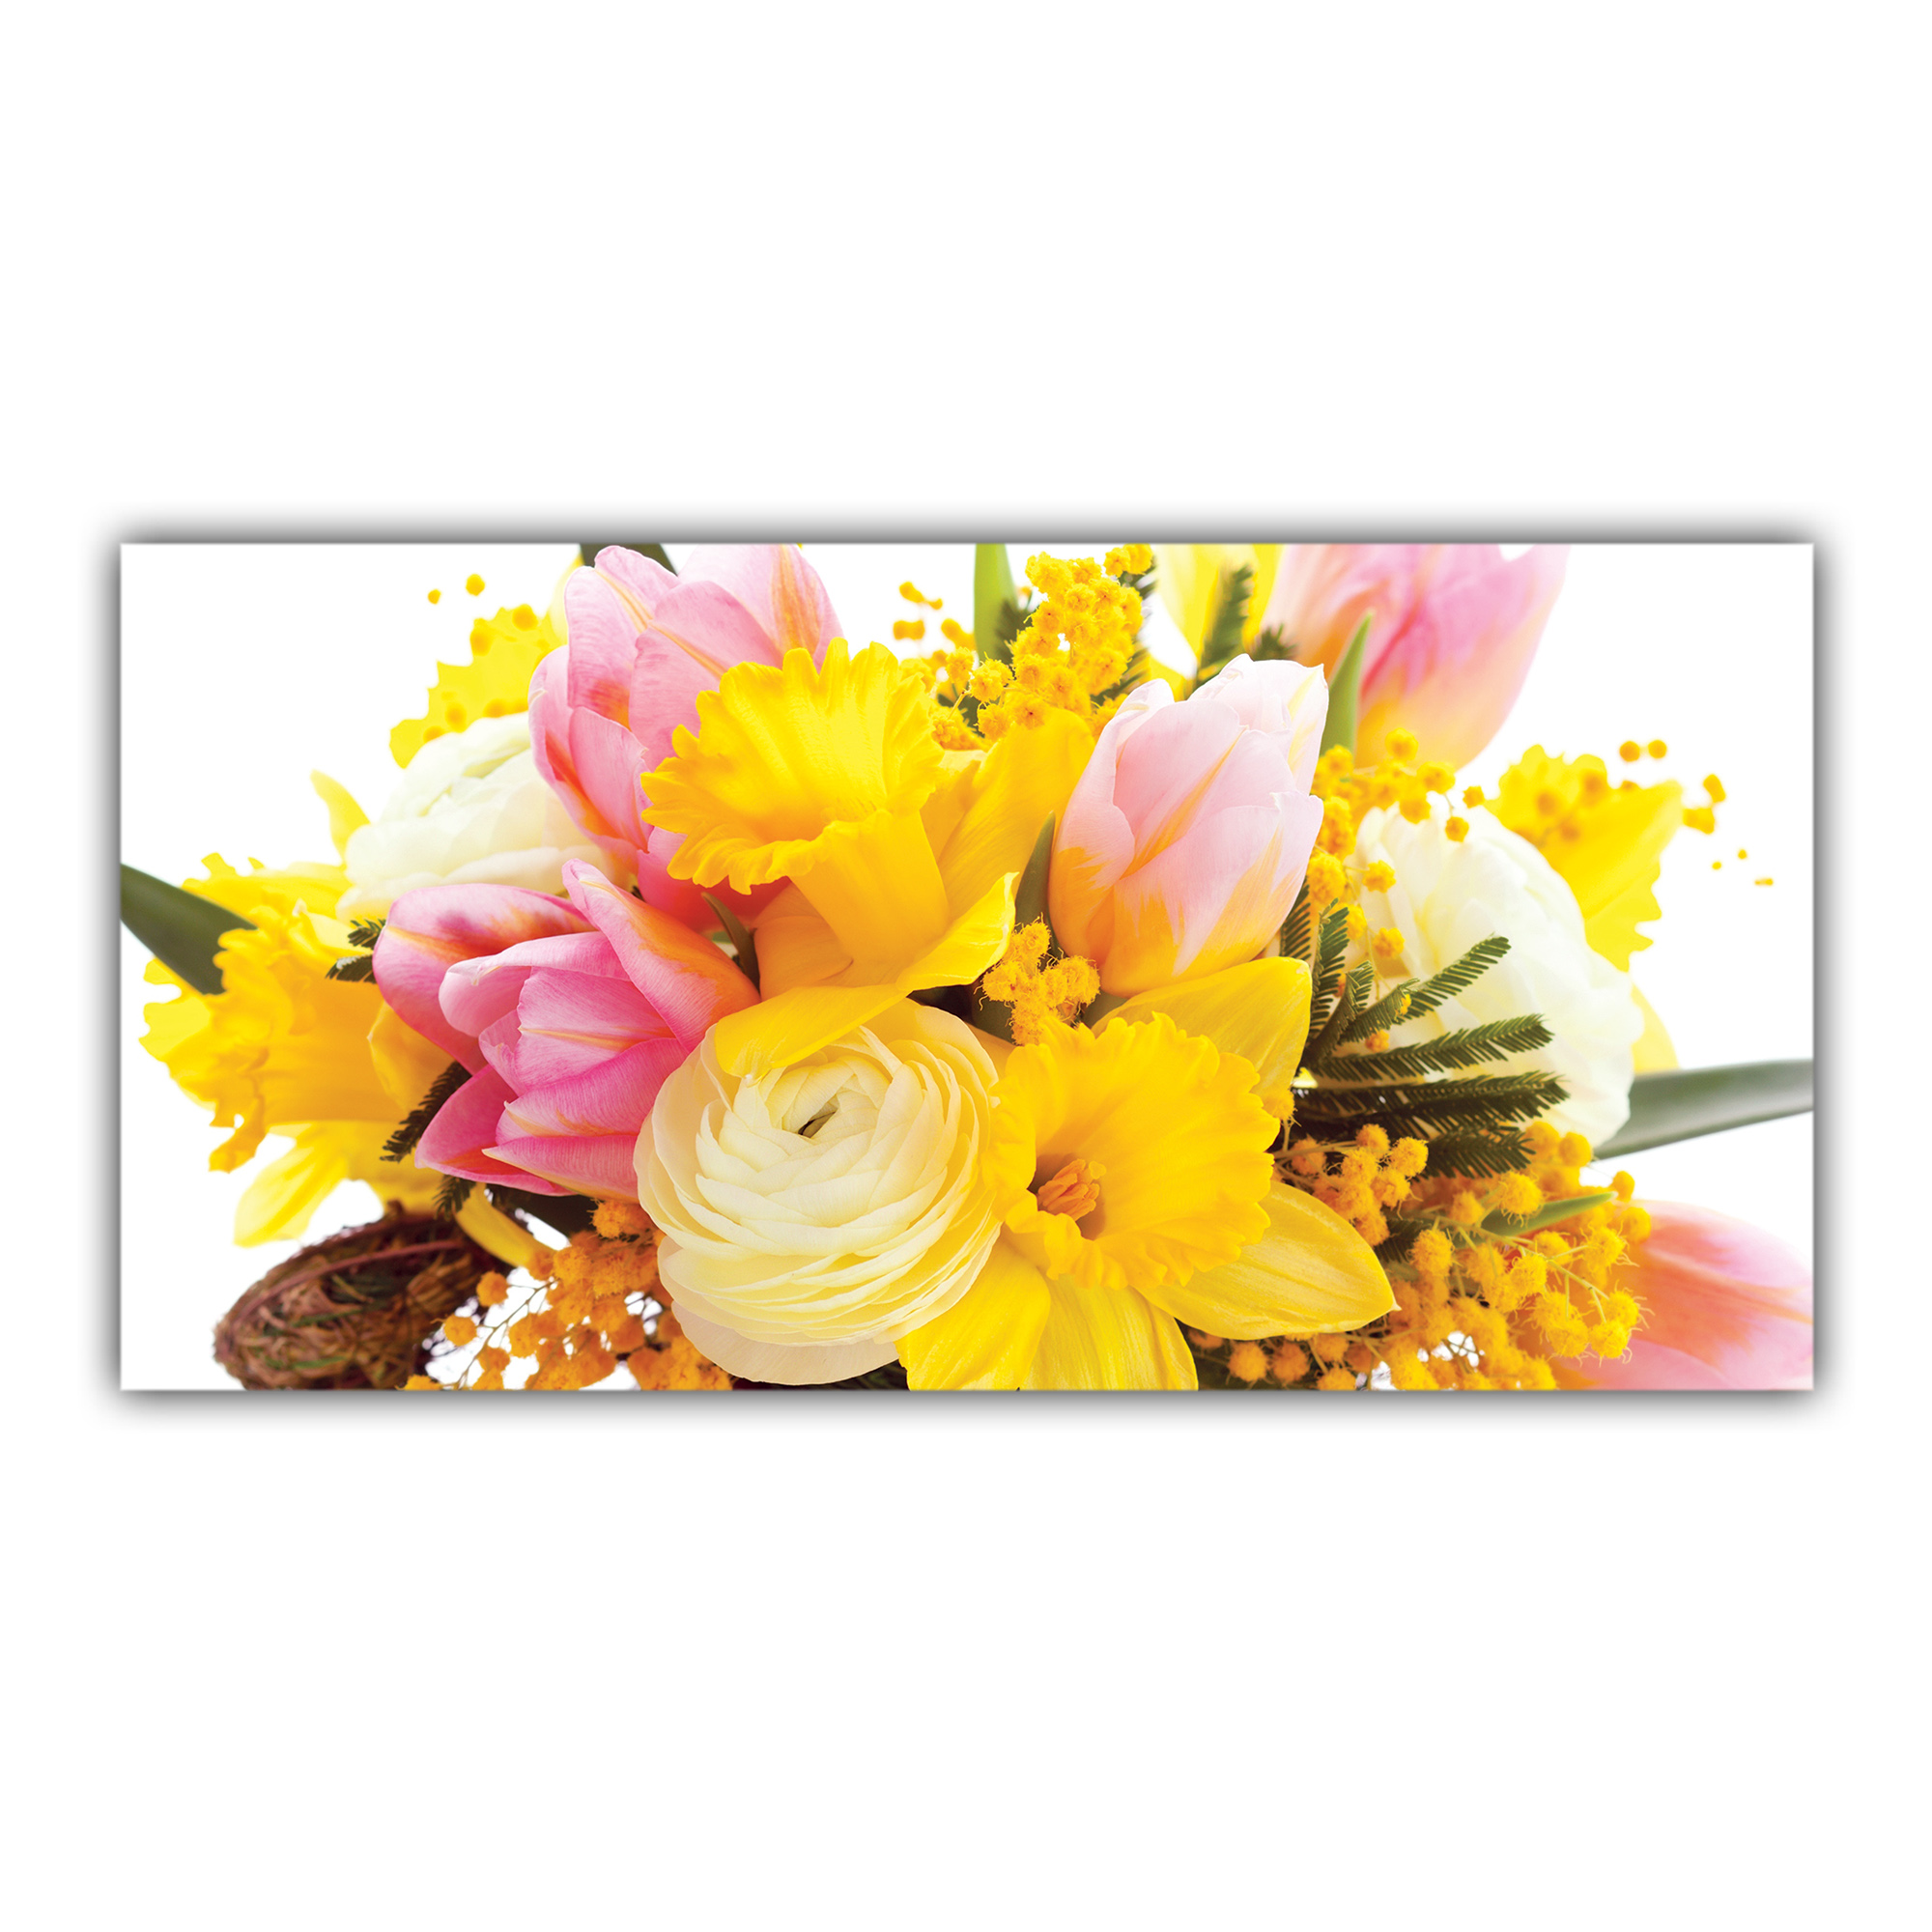 Bouquet Tulipes Roses Narcisses Mimosa Jonquilles